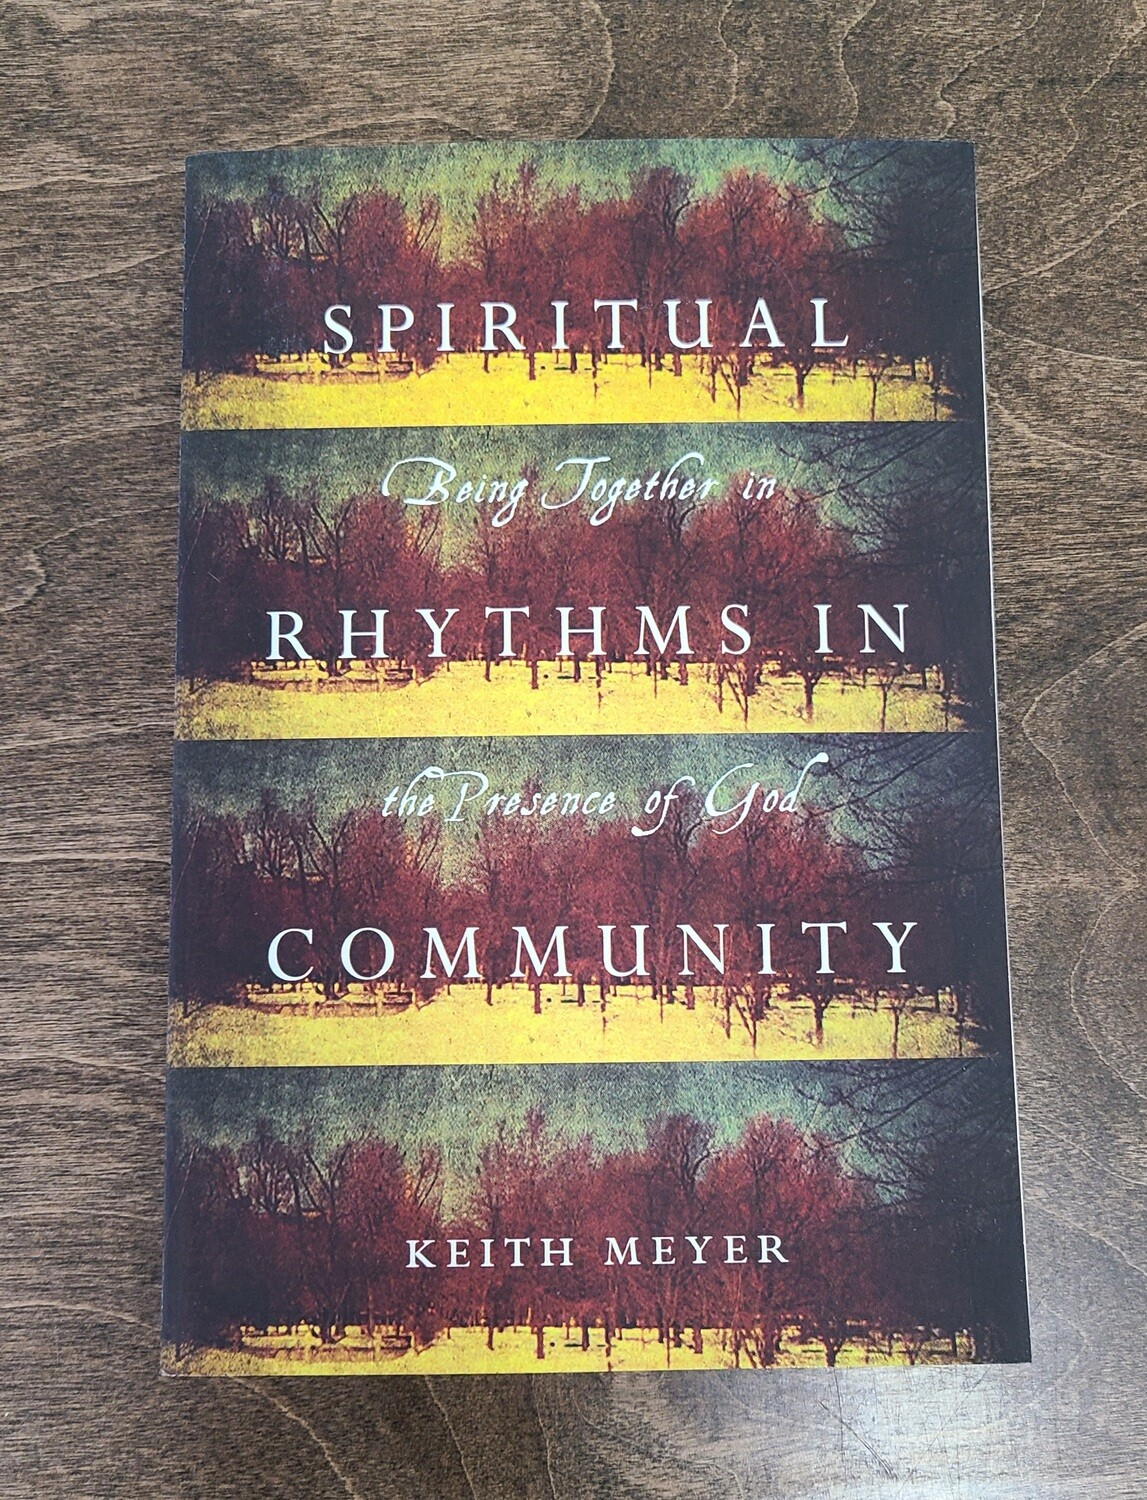 Spiritual Rhythms in Community by Keith Meyer